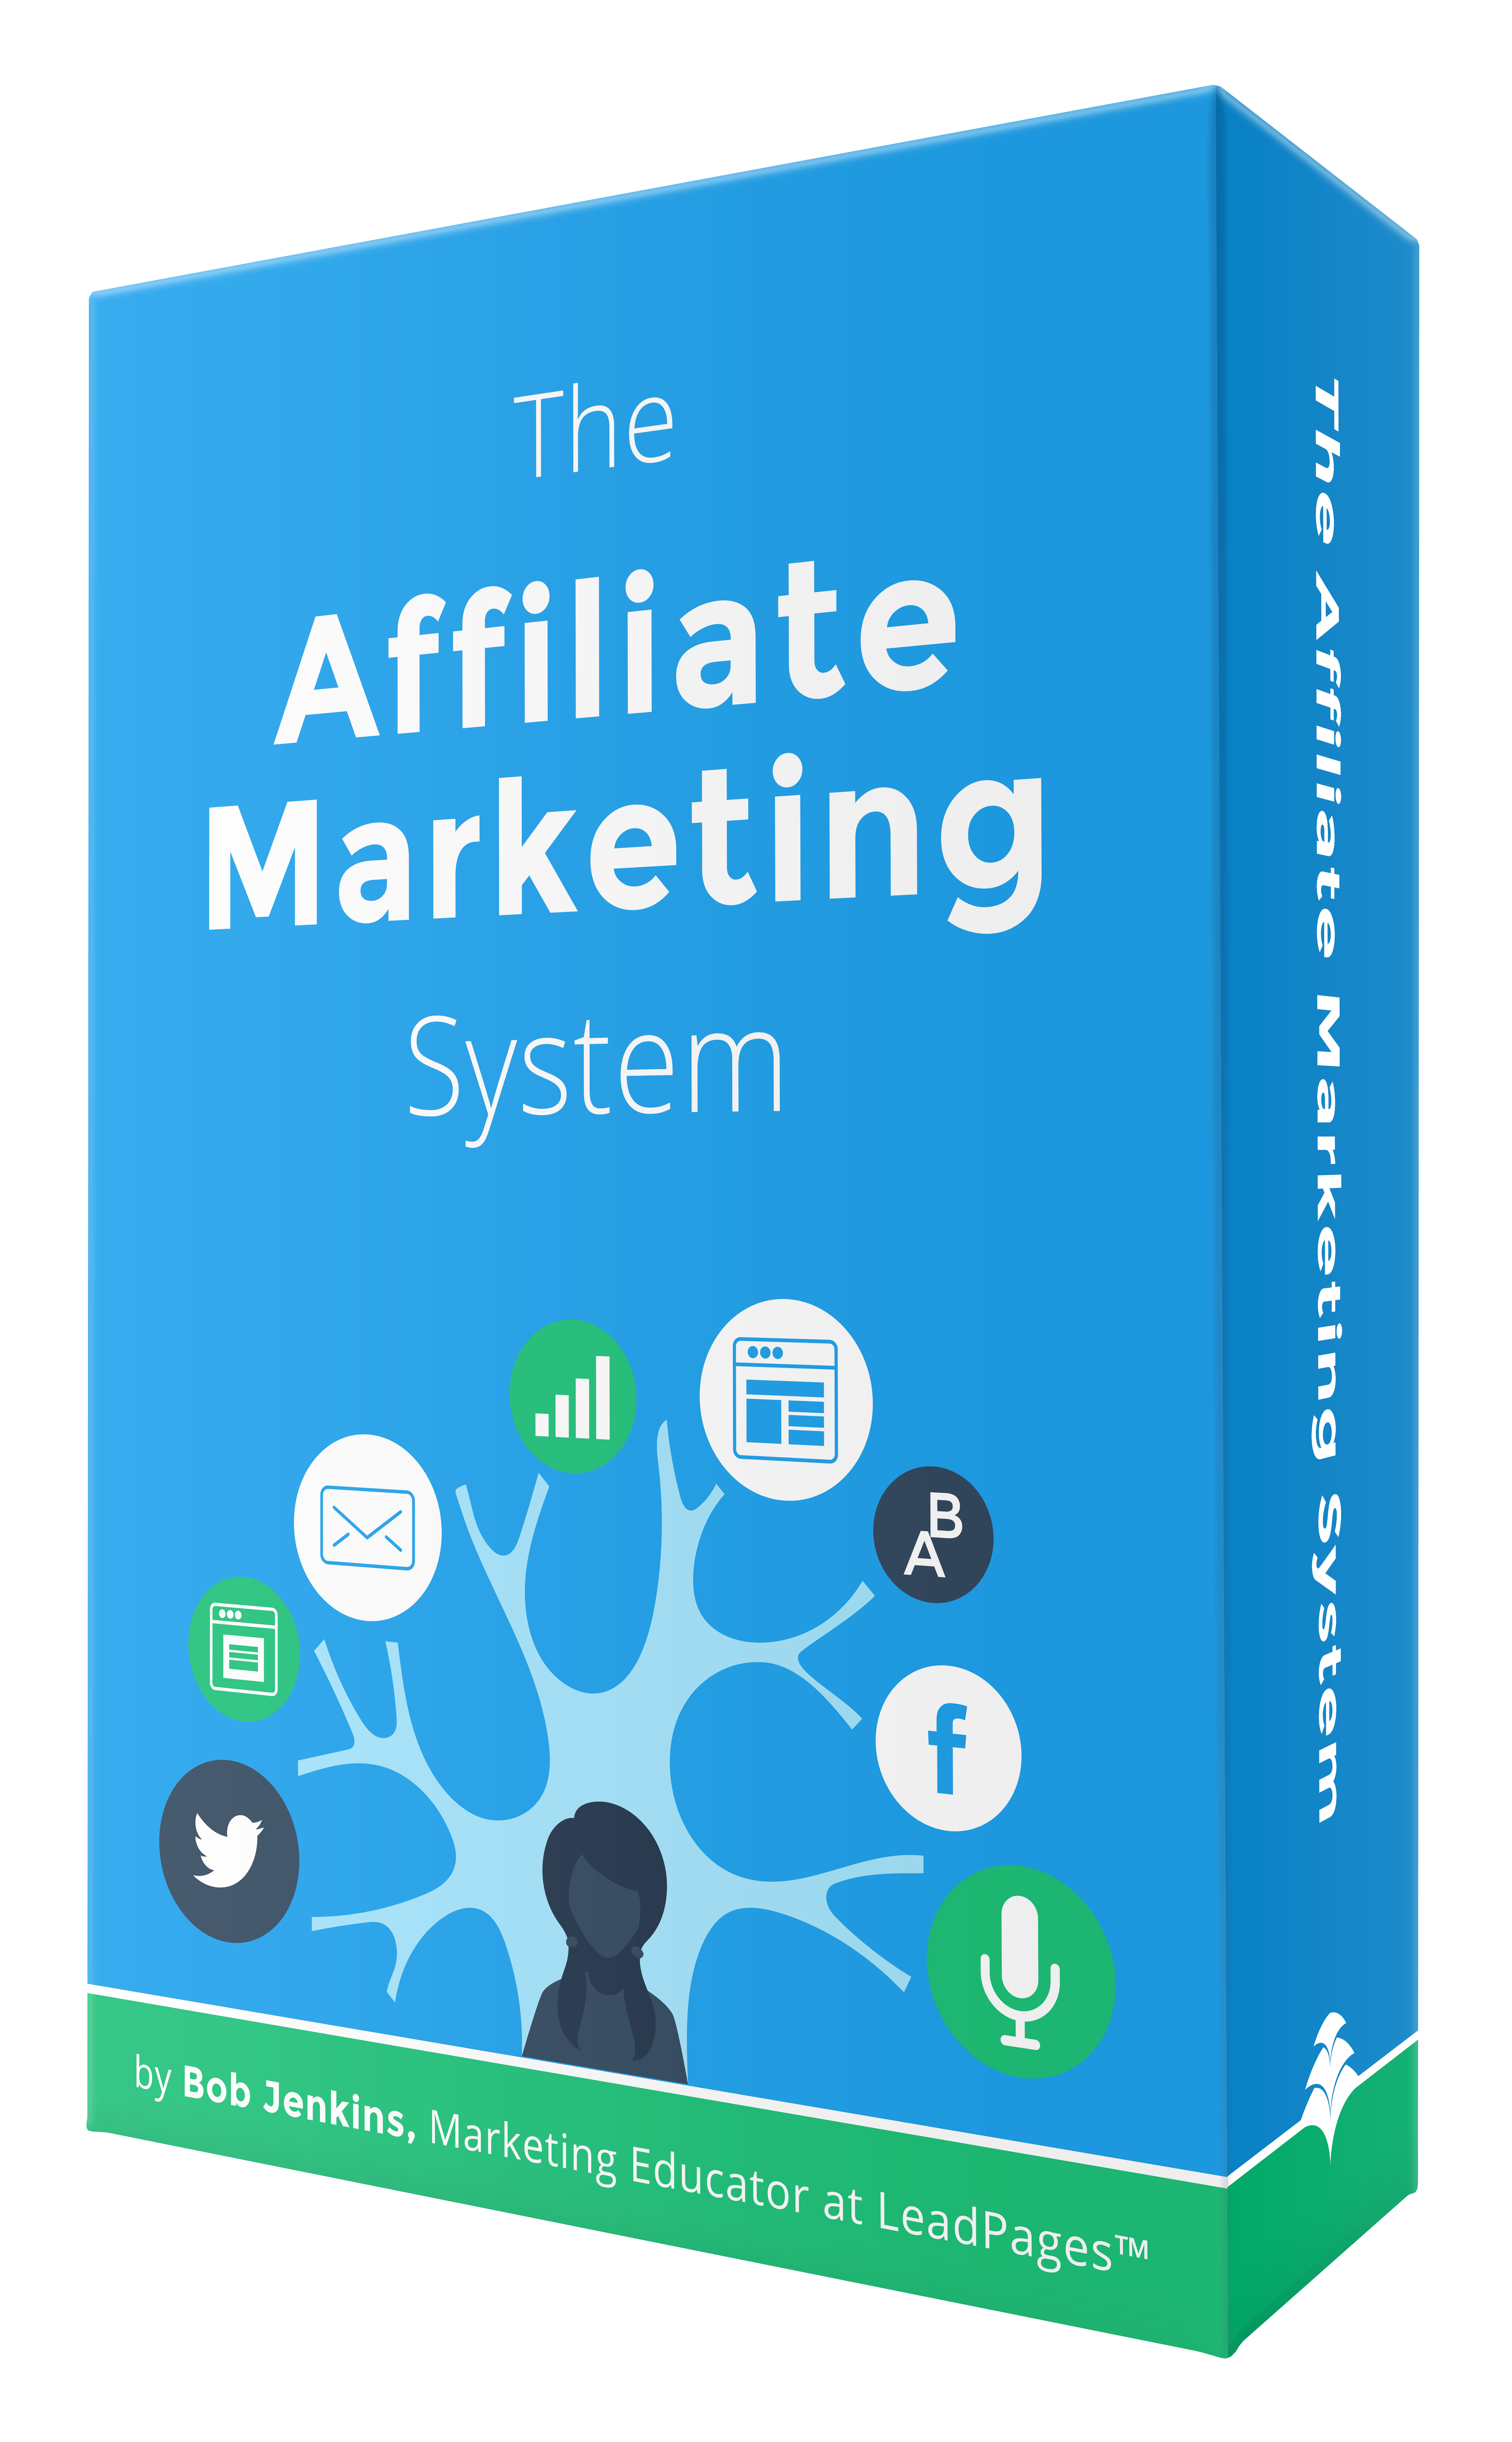 Leadpages -Your Affiliate Marketing System